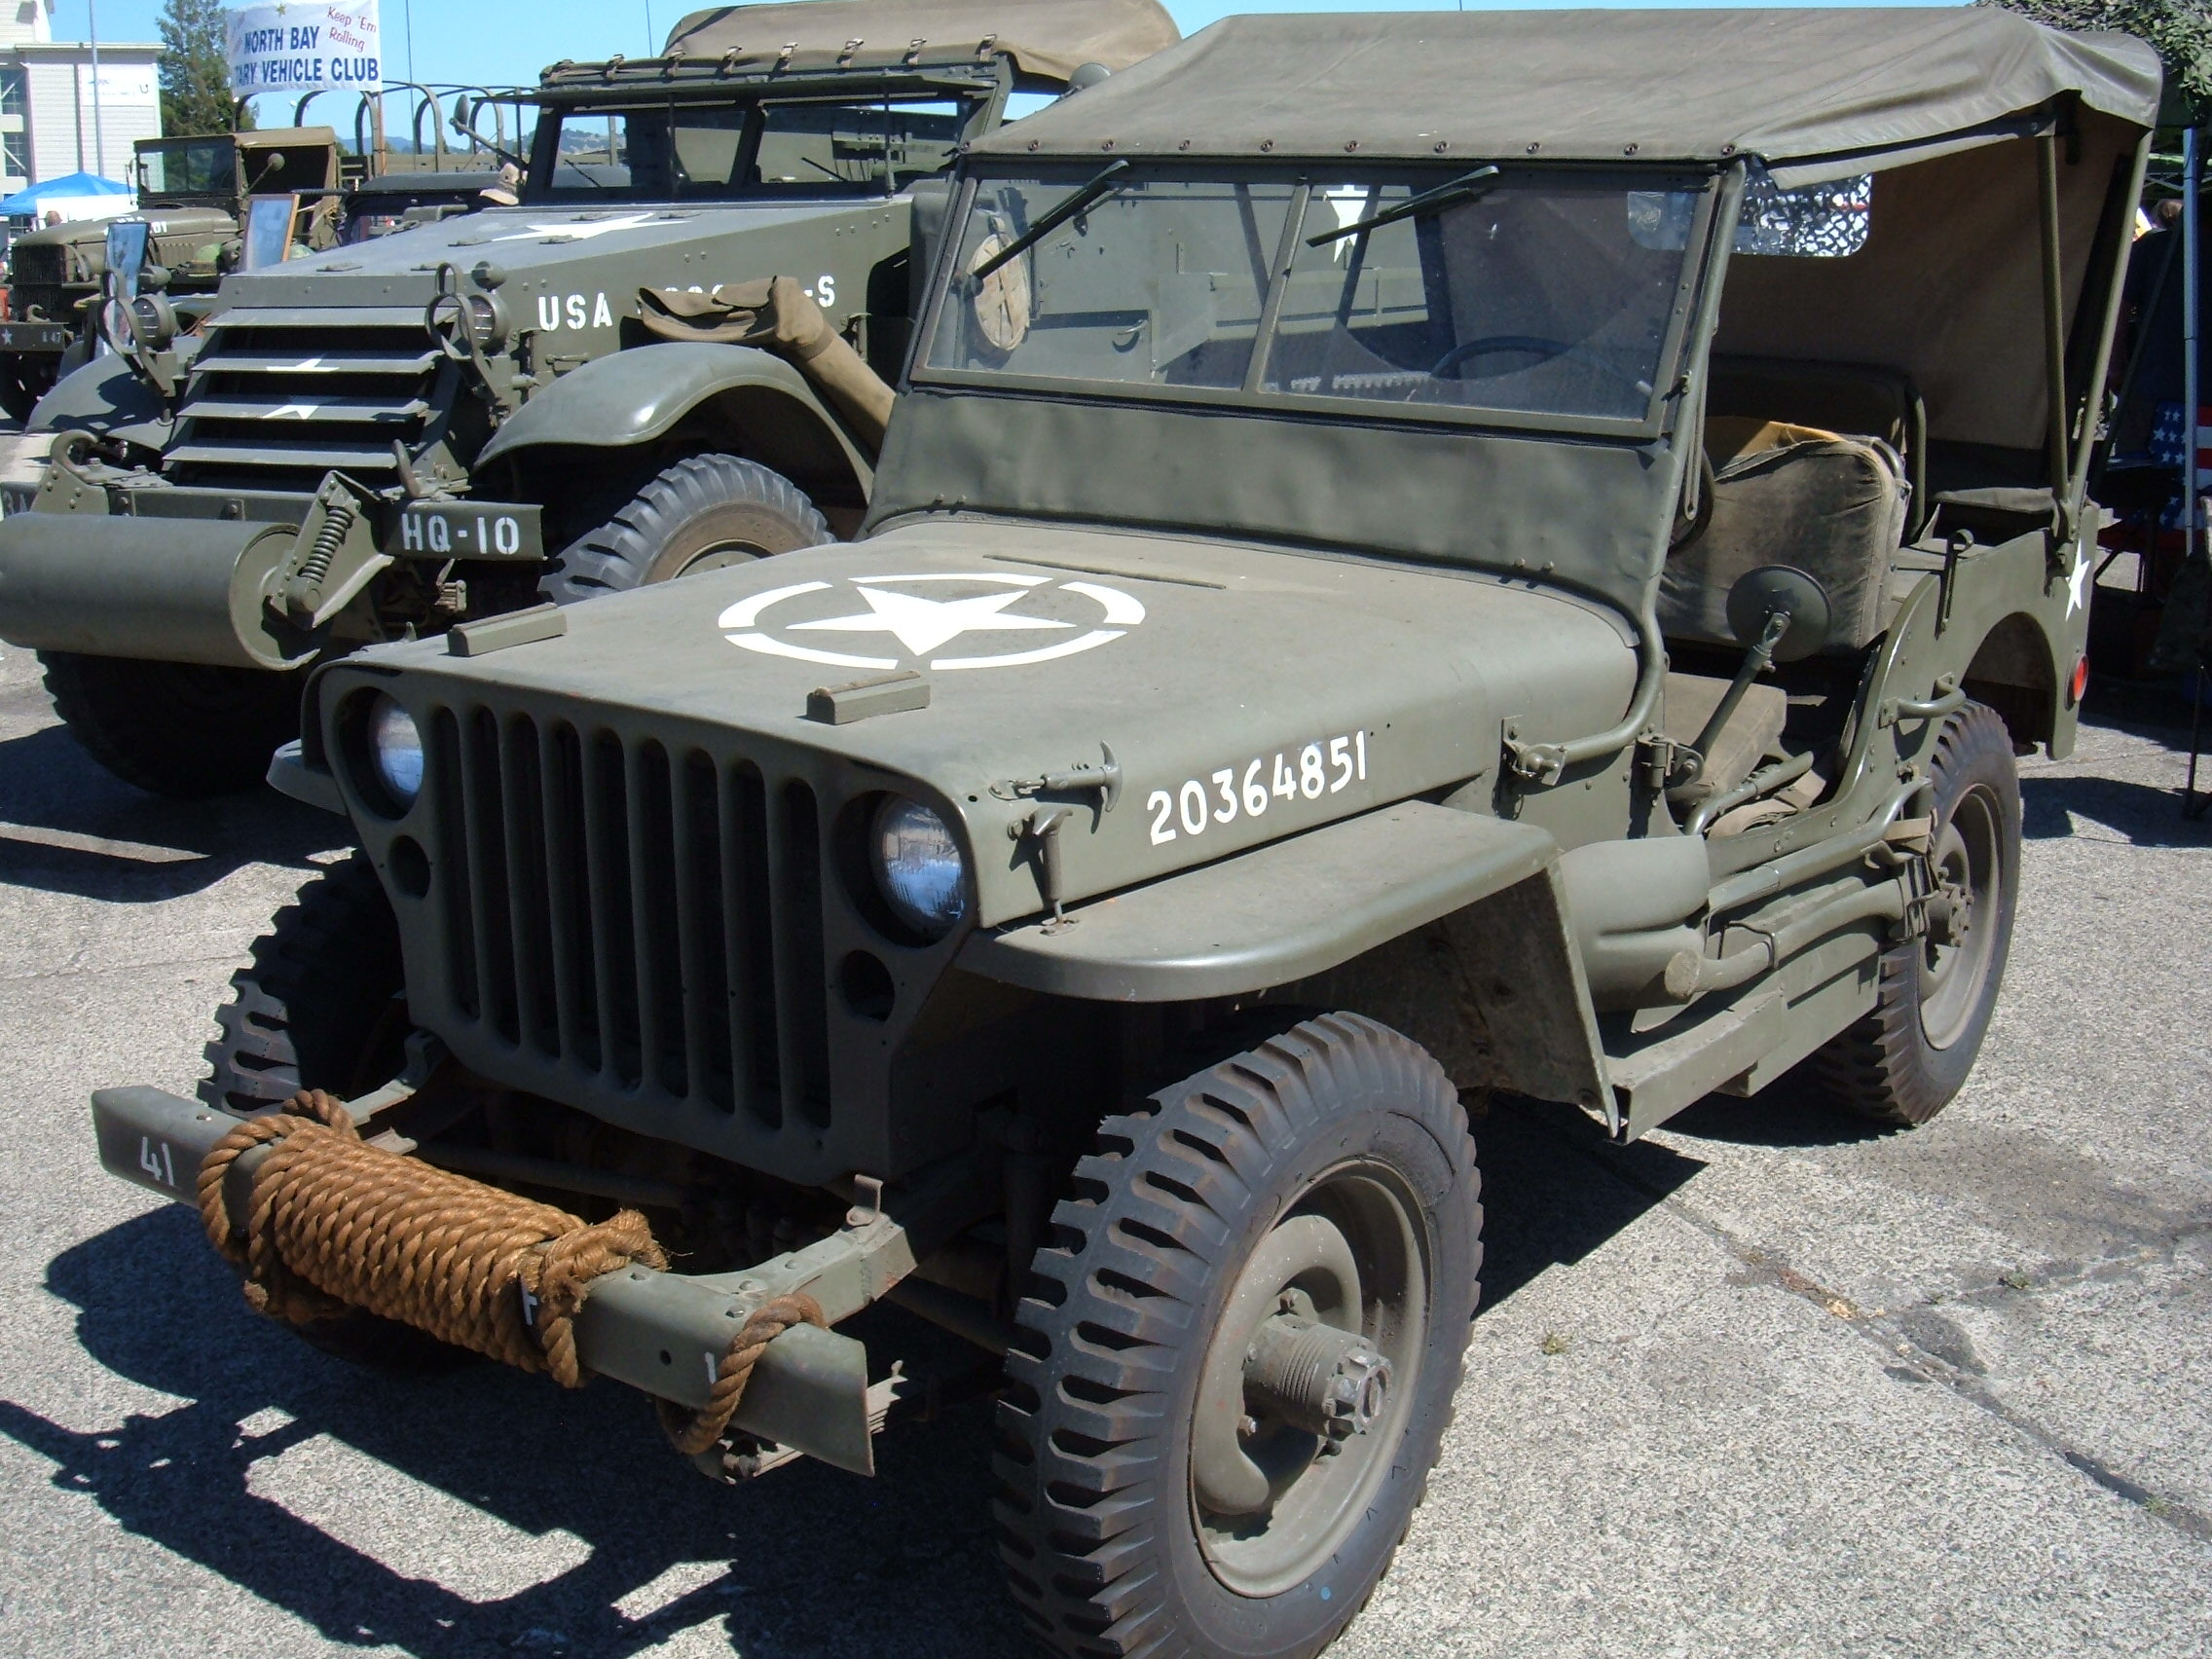 http://upload.wikimedia.org/wikipedia/commons/5/53/Covered_Willy%27s_jeep_Wings_Over_Wine_Country_2007.JPG